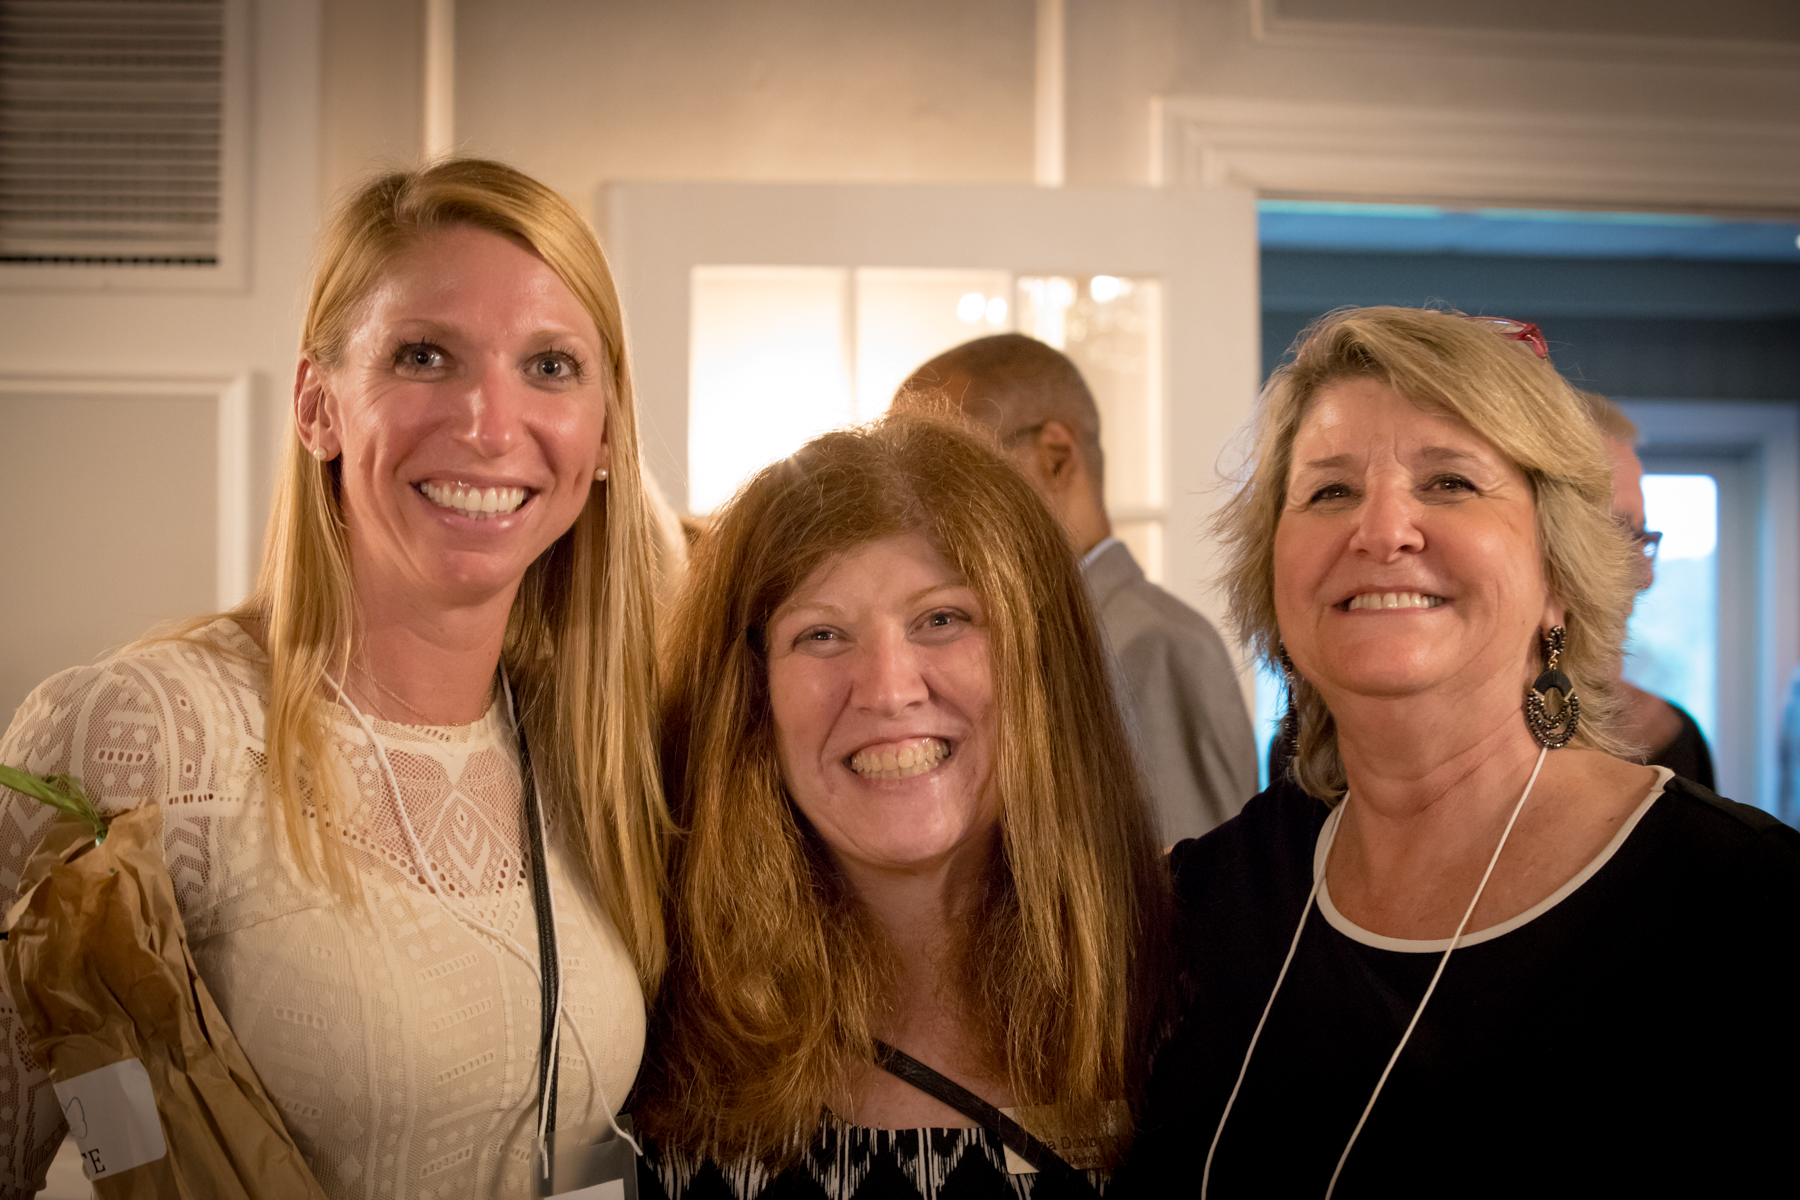 Dana Dovberg, Board Treasurer (center), enjoys the evening with guests Andrea Kinnik (L) and Linda Kinnik (R).